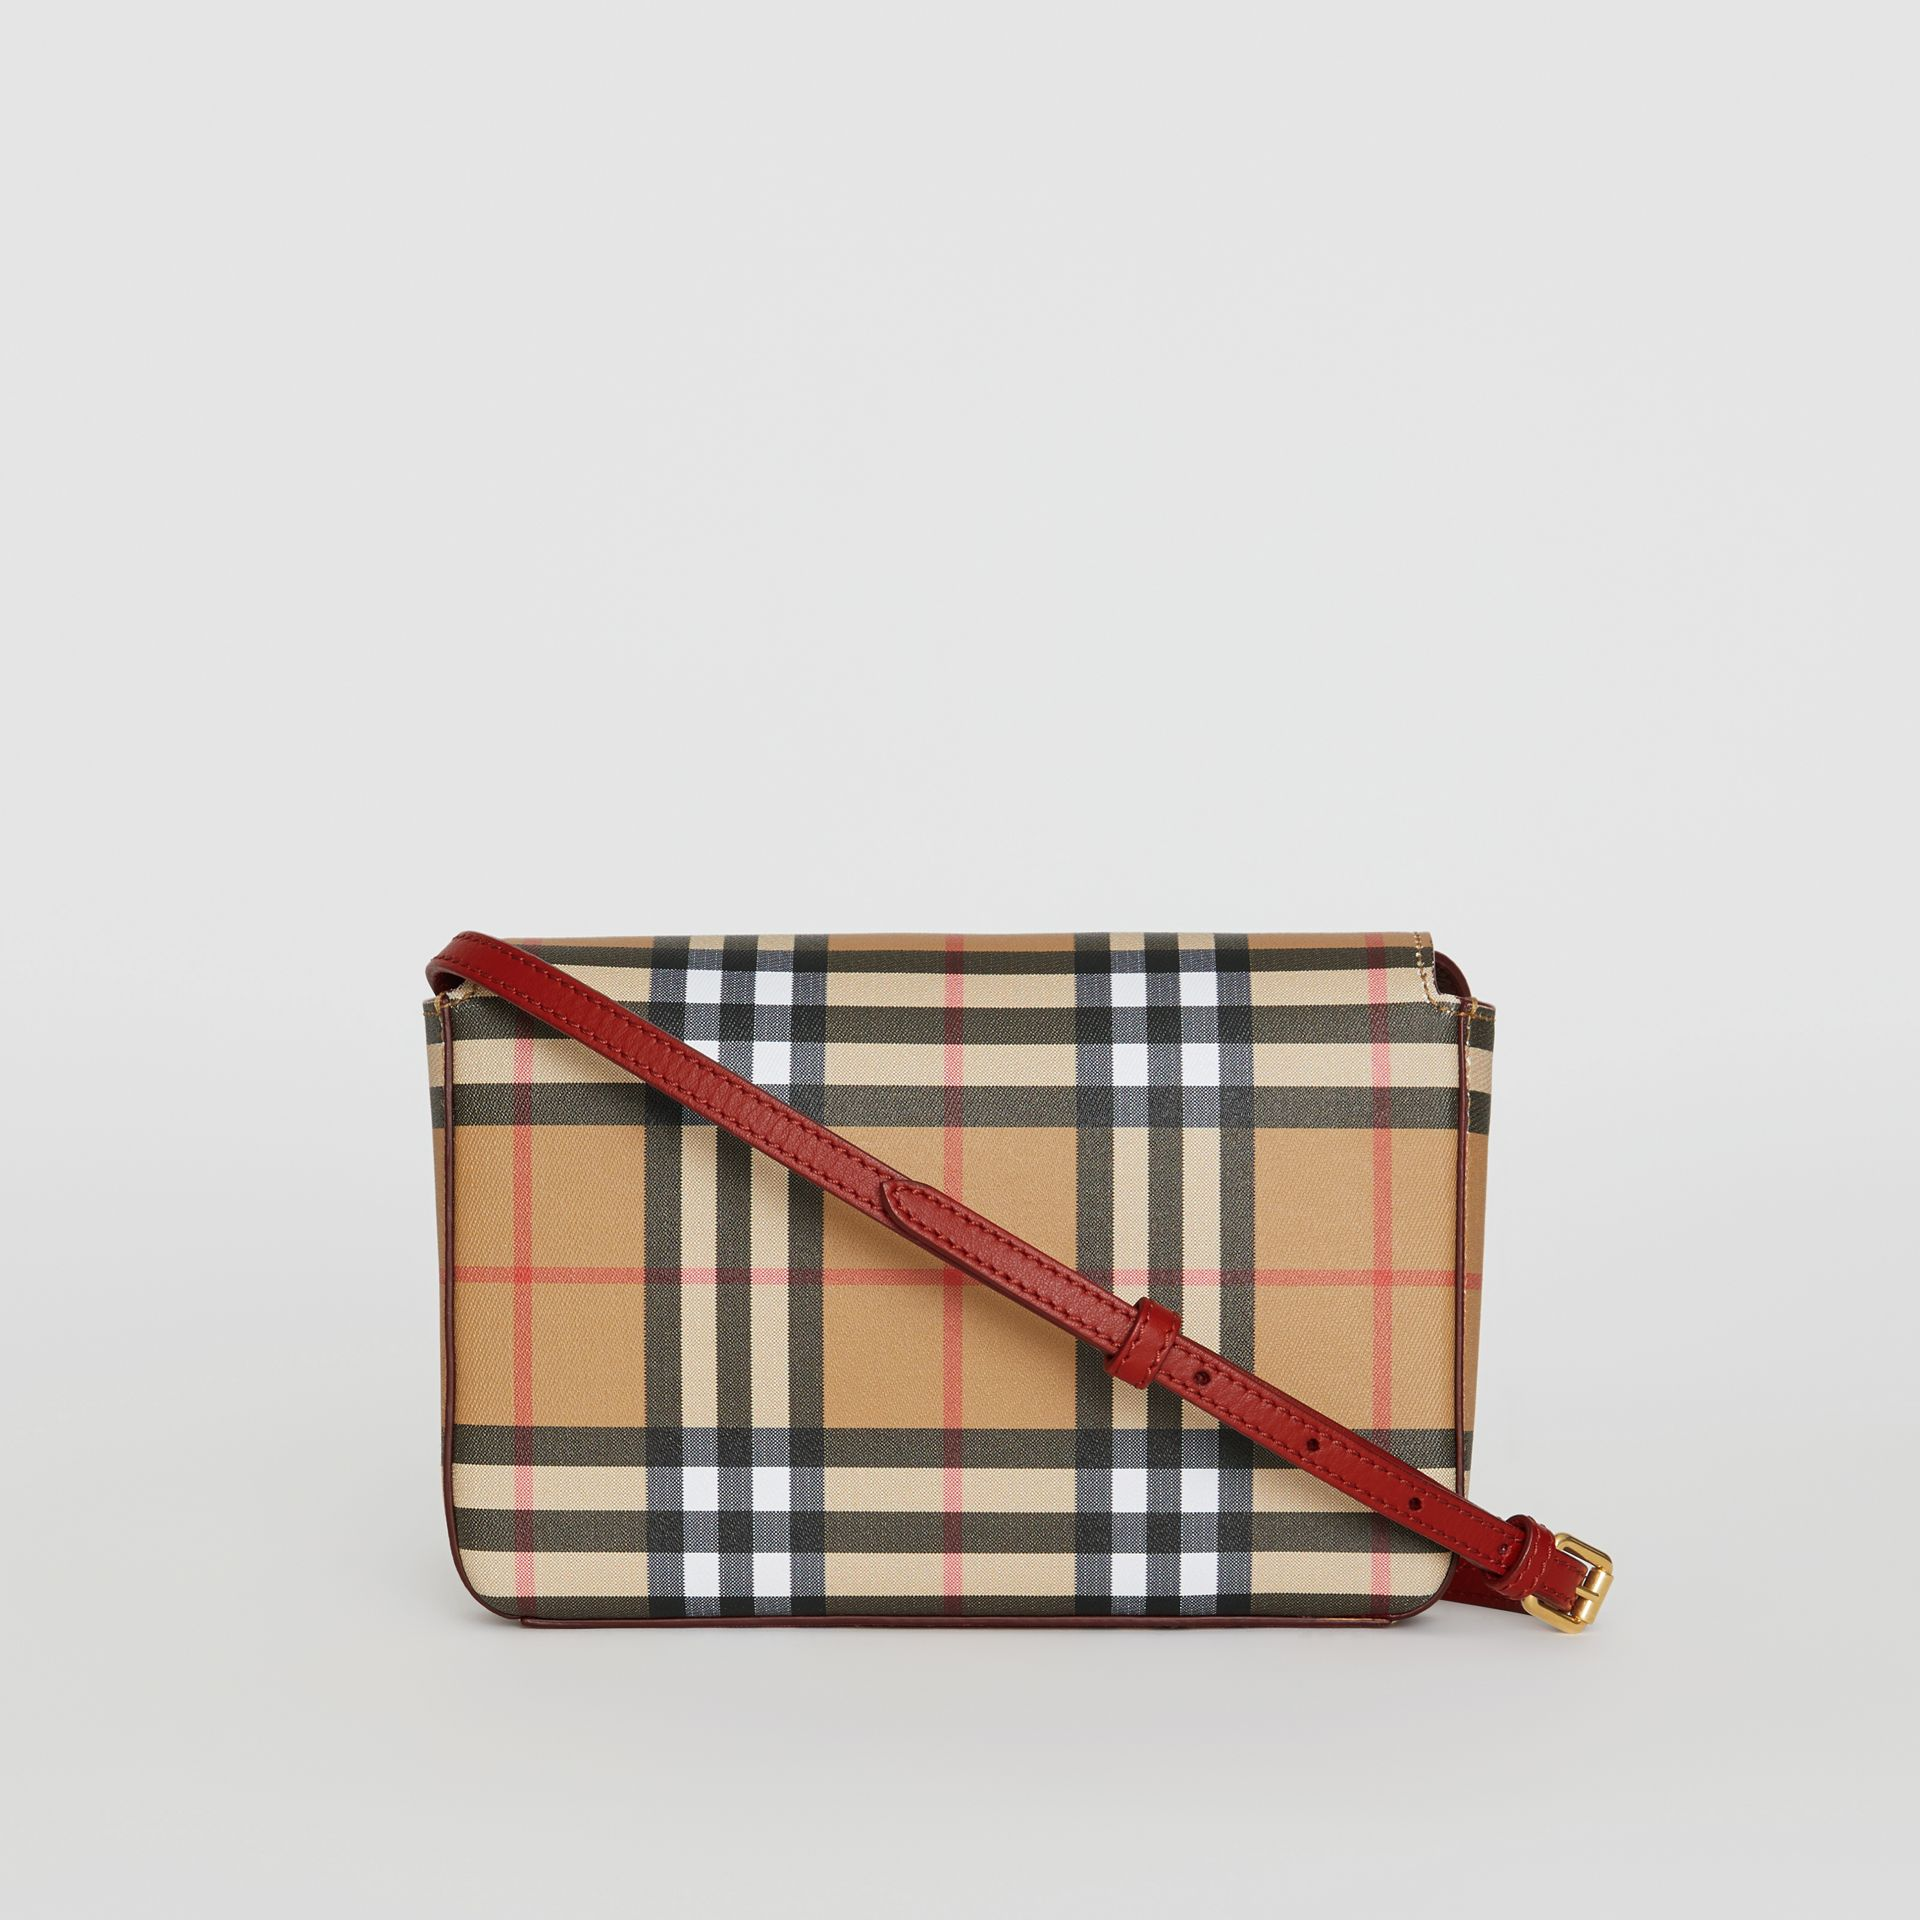 Small Vintage Check and Leather Crossbody Bag in Crimson - Women | Burberry United States - gallery image 7